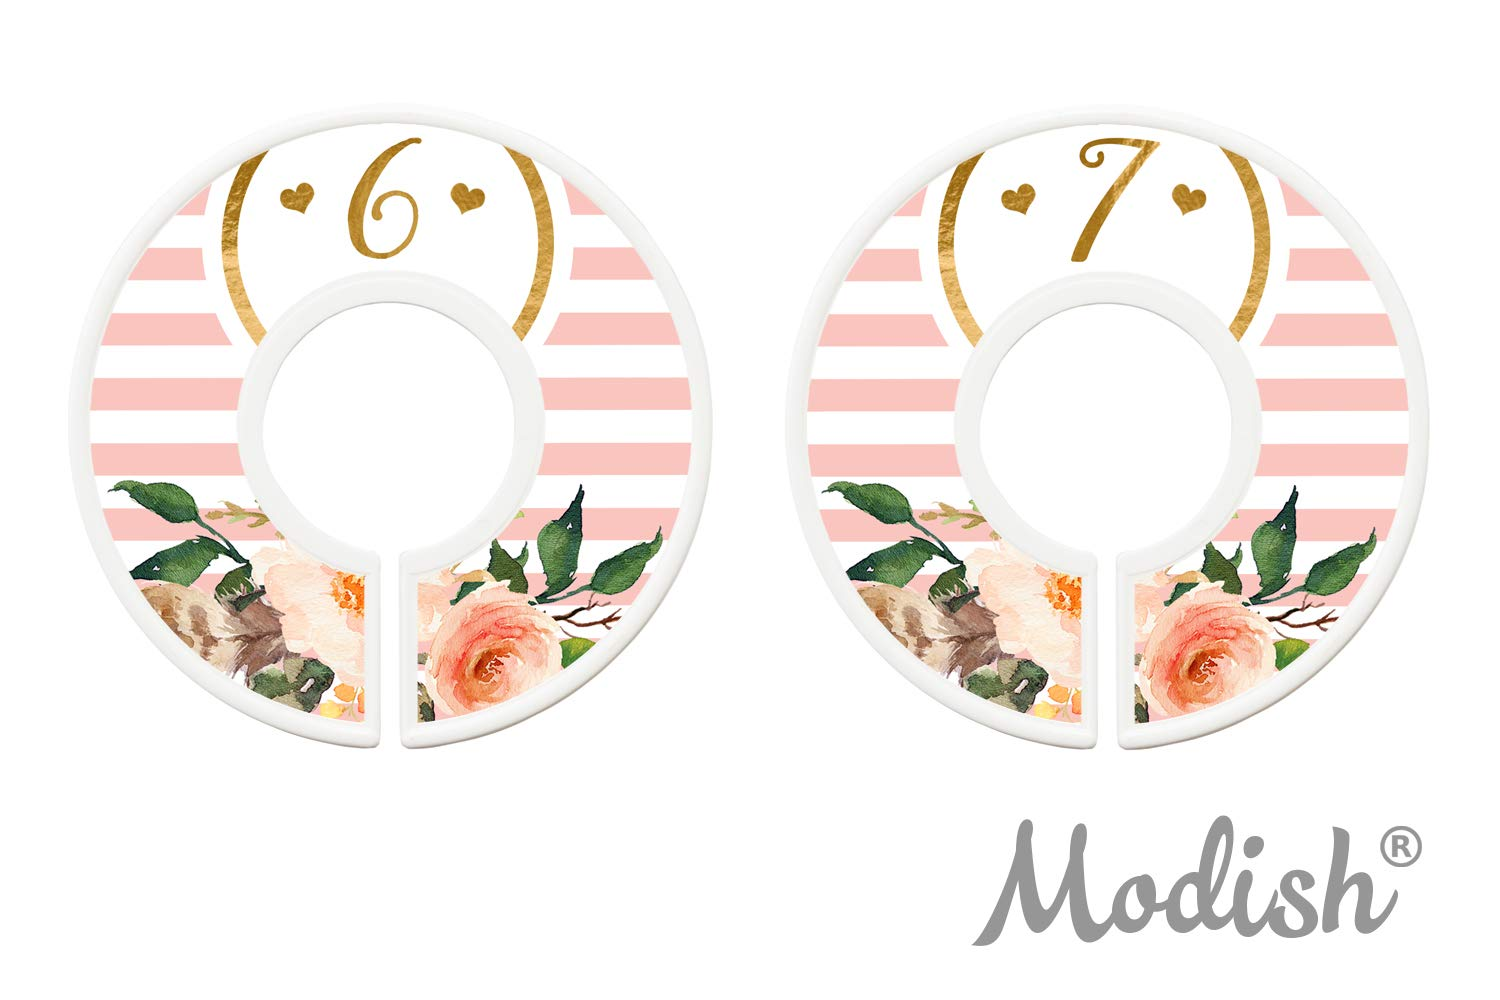 Closet Organizers Days Modish Labels Daily Clothes Organizers Days of Week Closet Dividers Work Week Clothes Organizer Girl Pink Flowers Stripes School Supplies